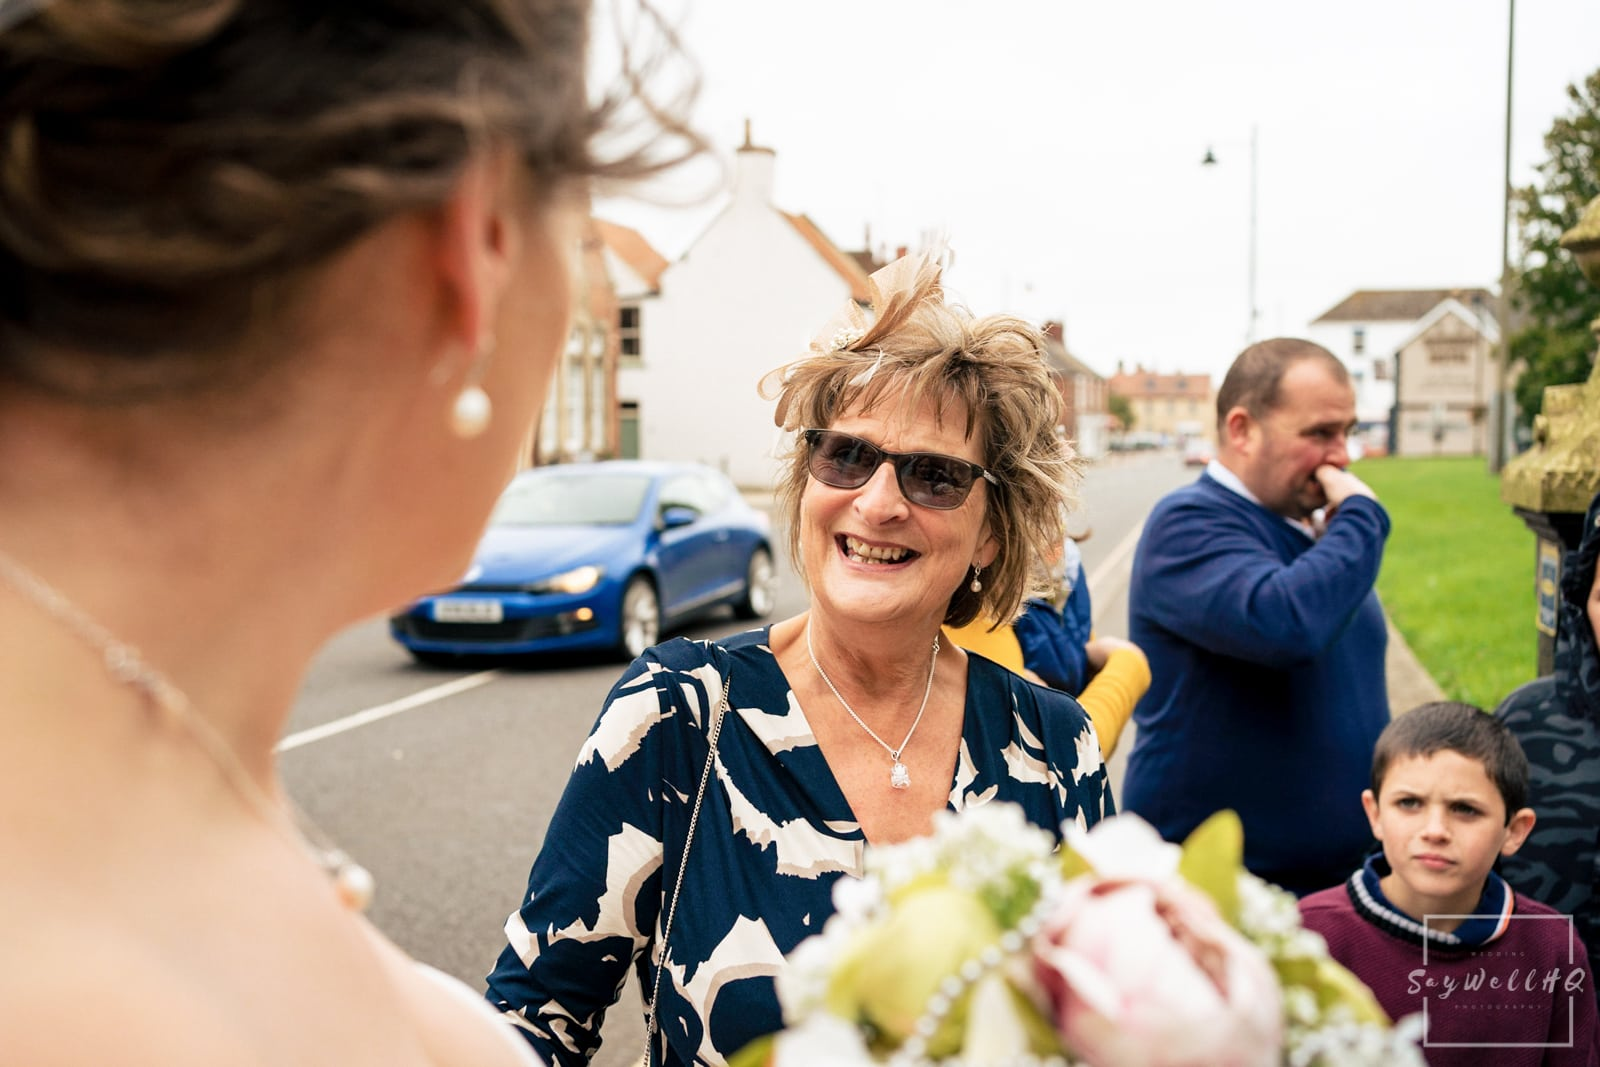 Lincoln Wedding Photography + Spilsby Church Wedding Photographer + Bride and groom celebrate with their wedding guests after their wedding ceremony in Lincoln